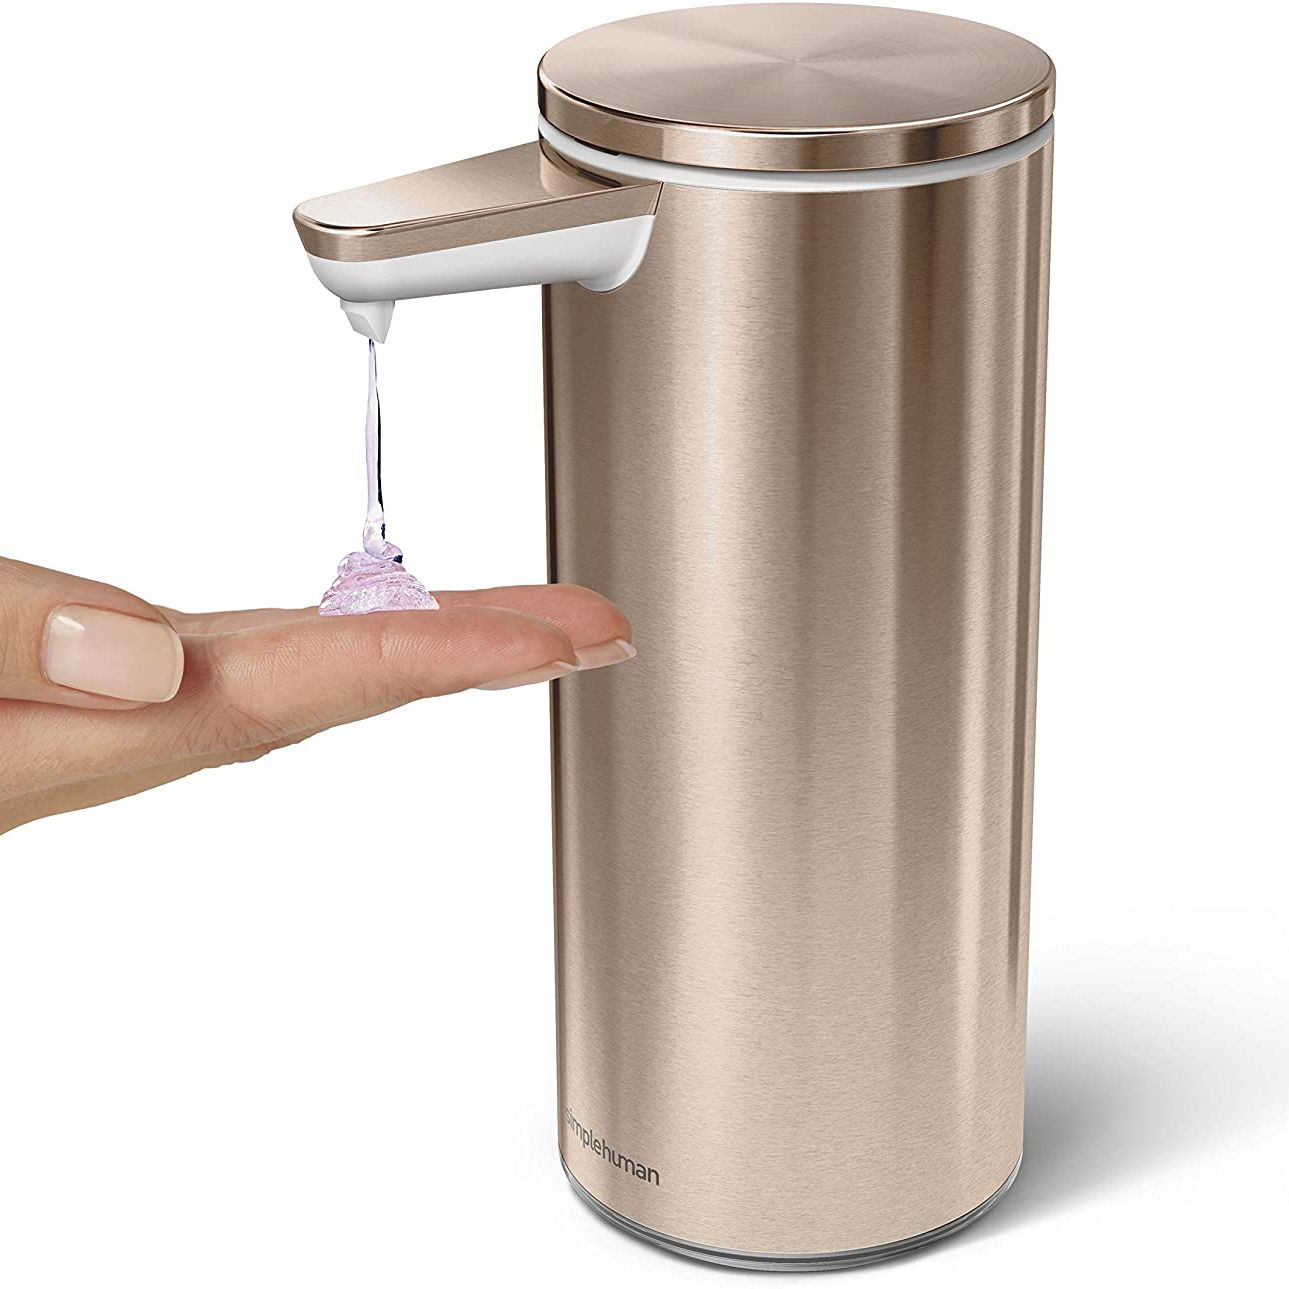 the 9 best soap dispensers of 2021